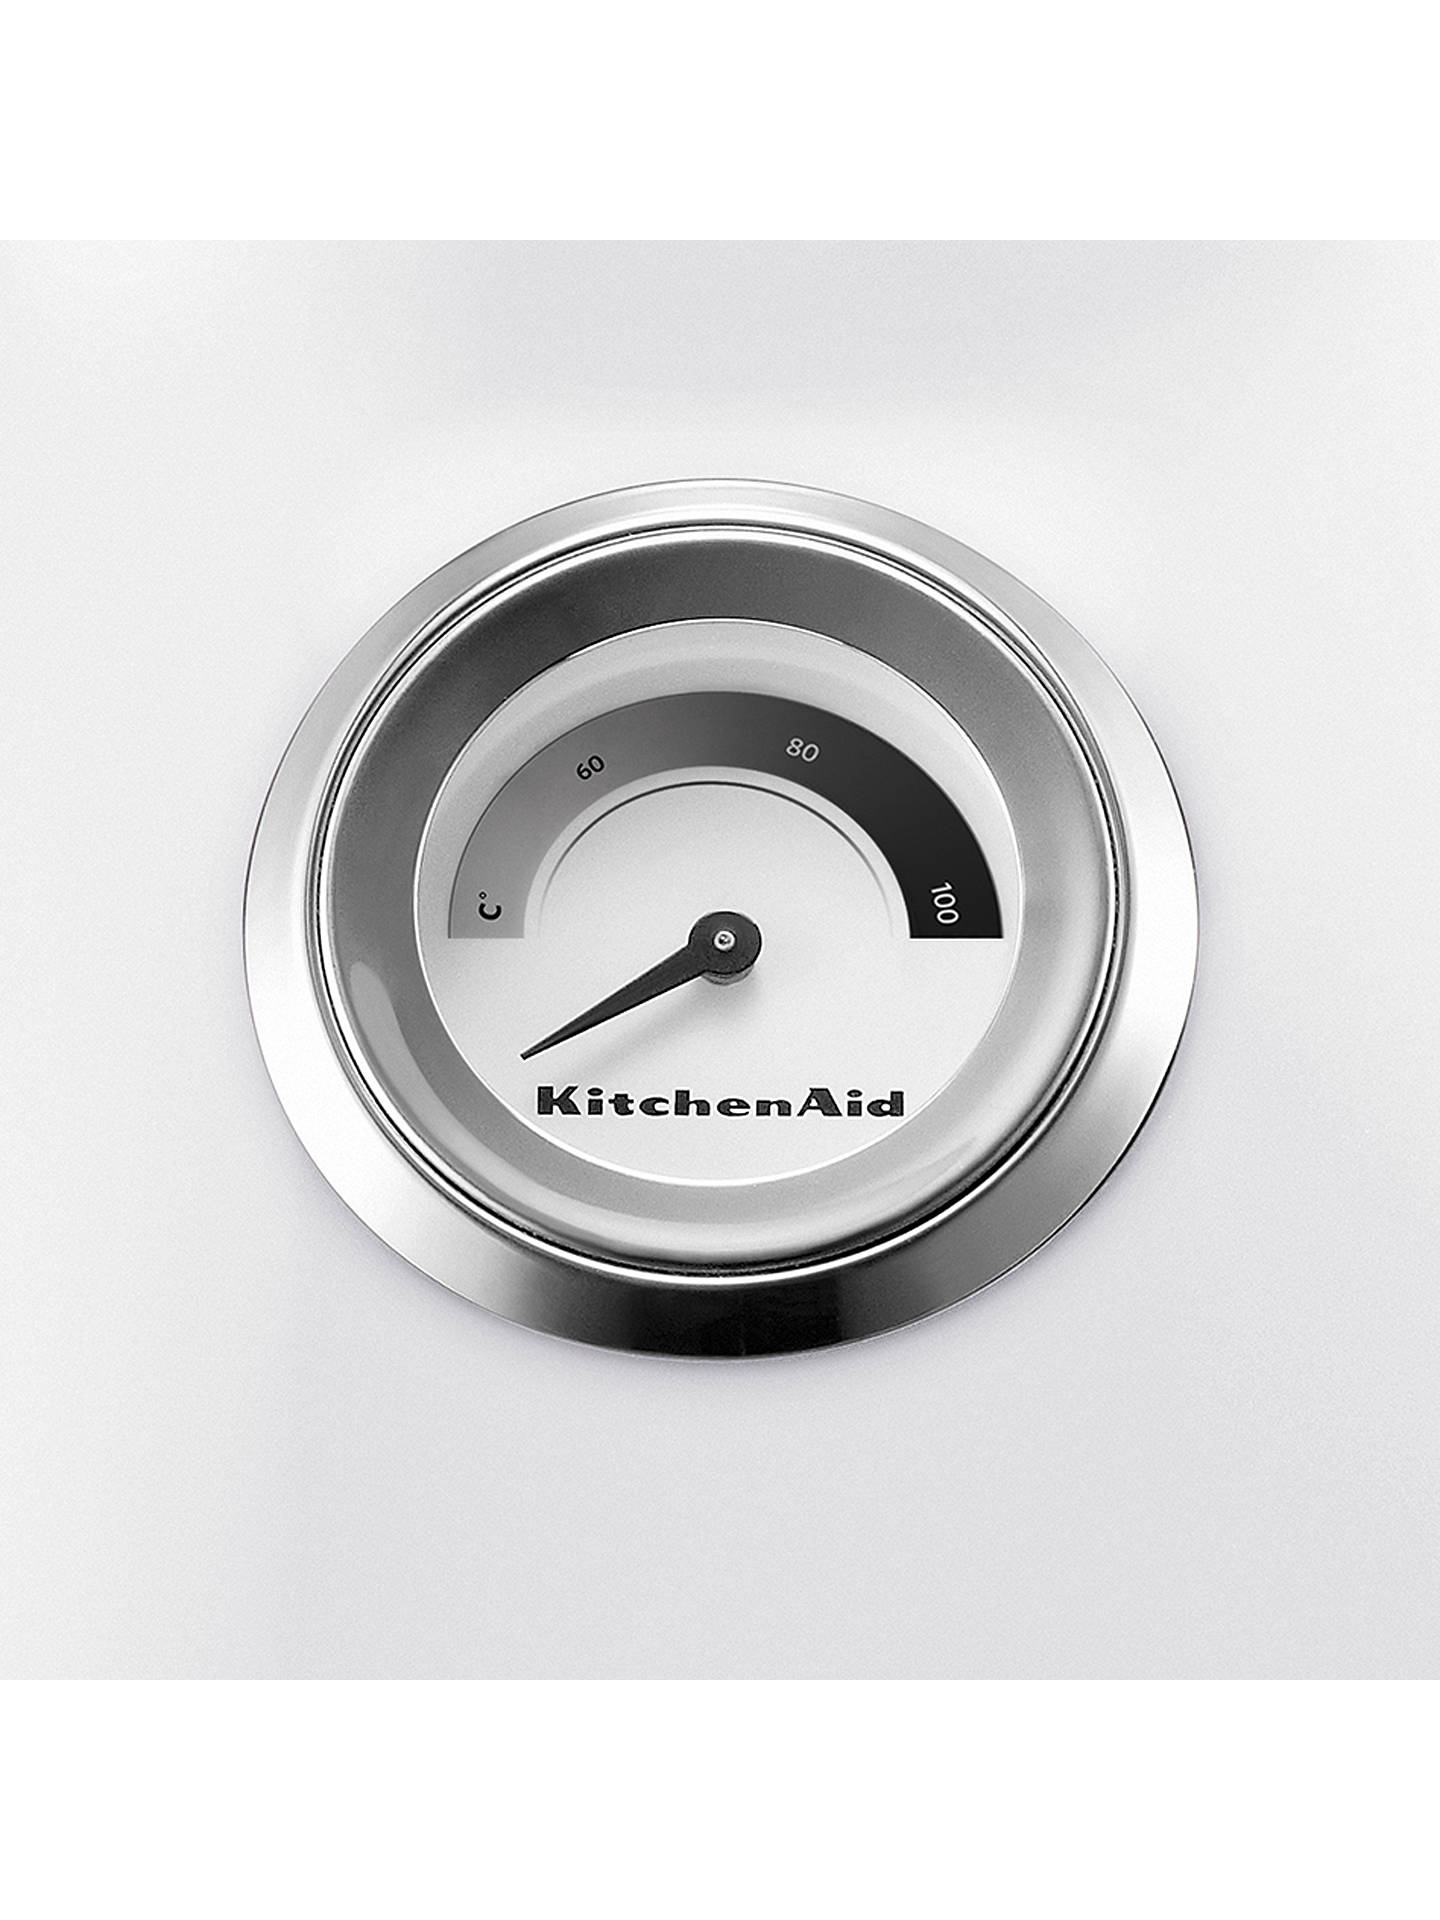 KitchenAid Artisan 1.5L Kettle, Frosted